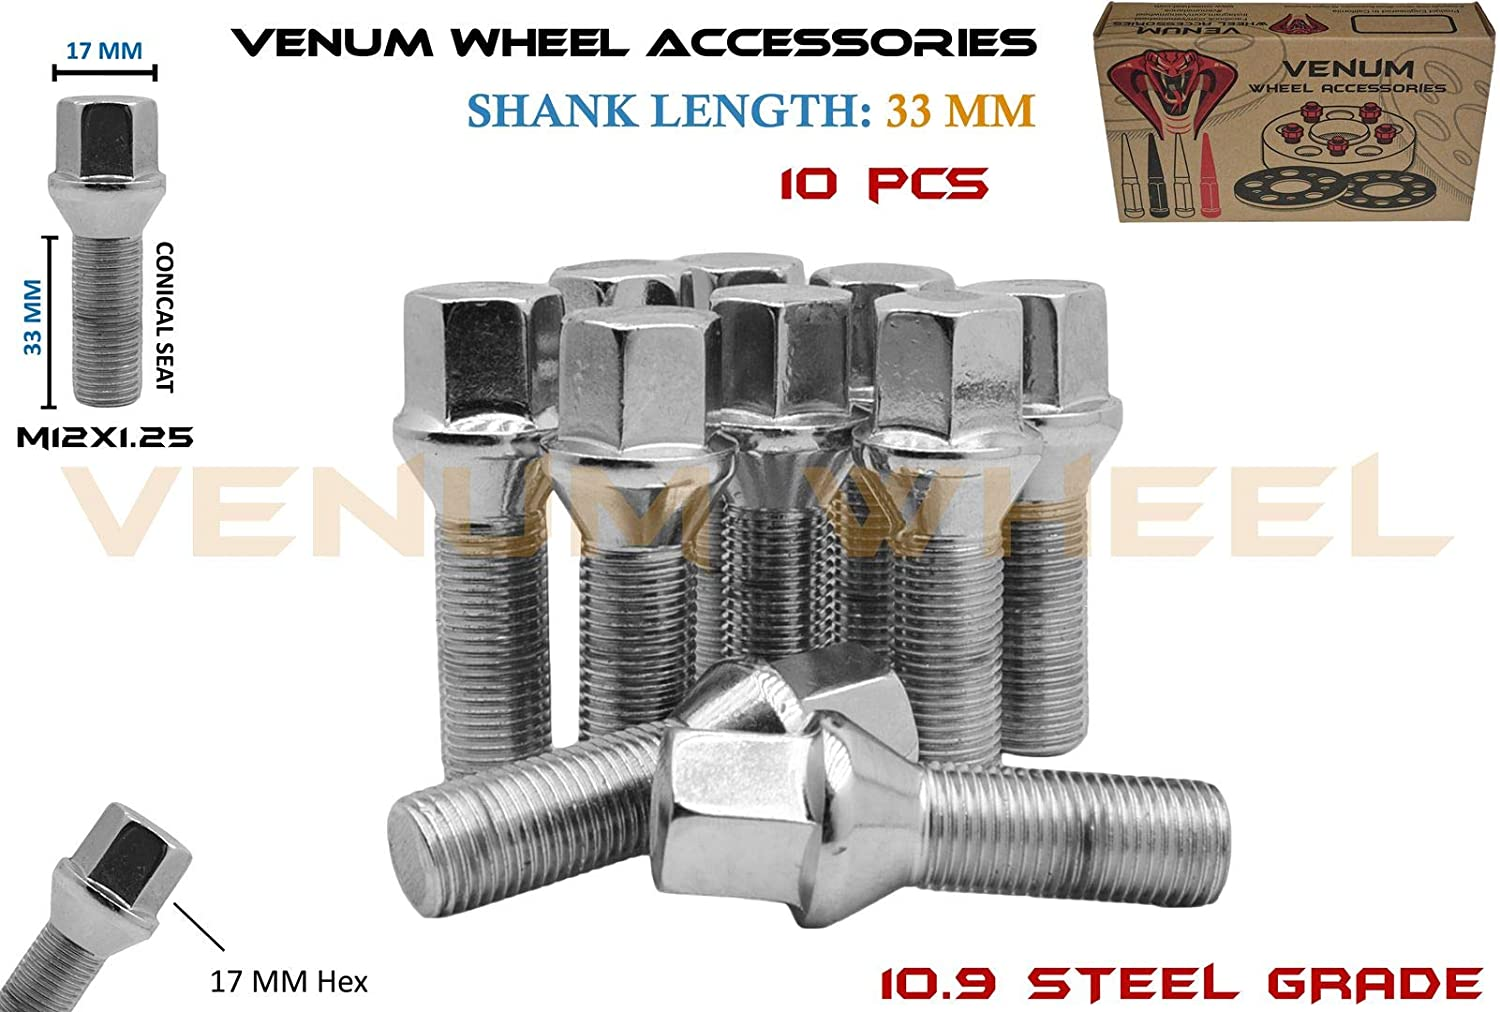 Venum wheel accessories 10Pc Chrome M12x1.25 Conical Seat Lug Bolts 33 MM Extended Shank Length Works with Jeep Fiat Dodge Chrysler Alfa Romeo Factory & Aftermarket Wheels